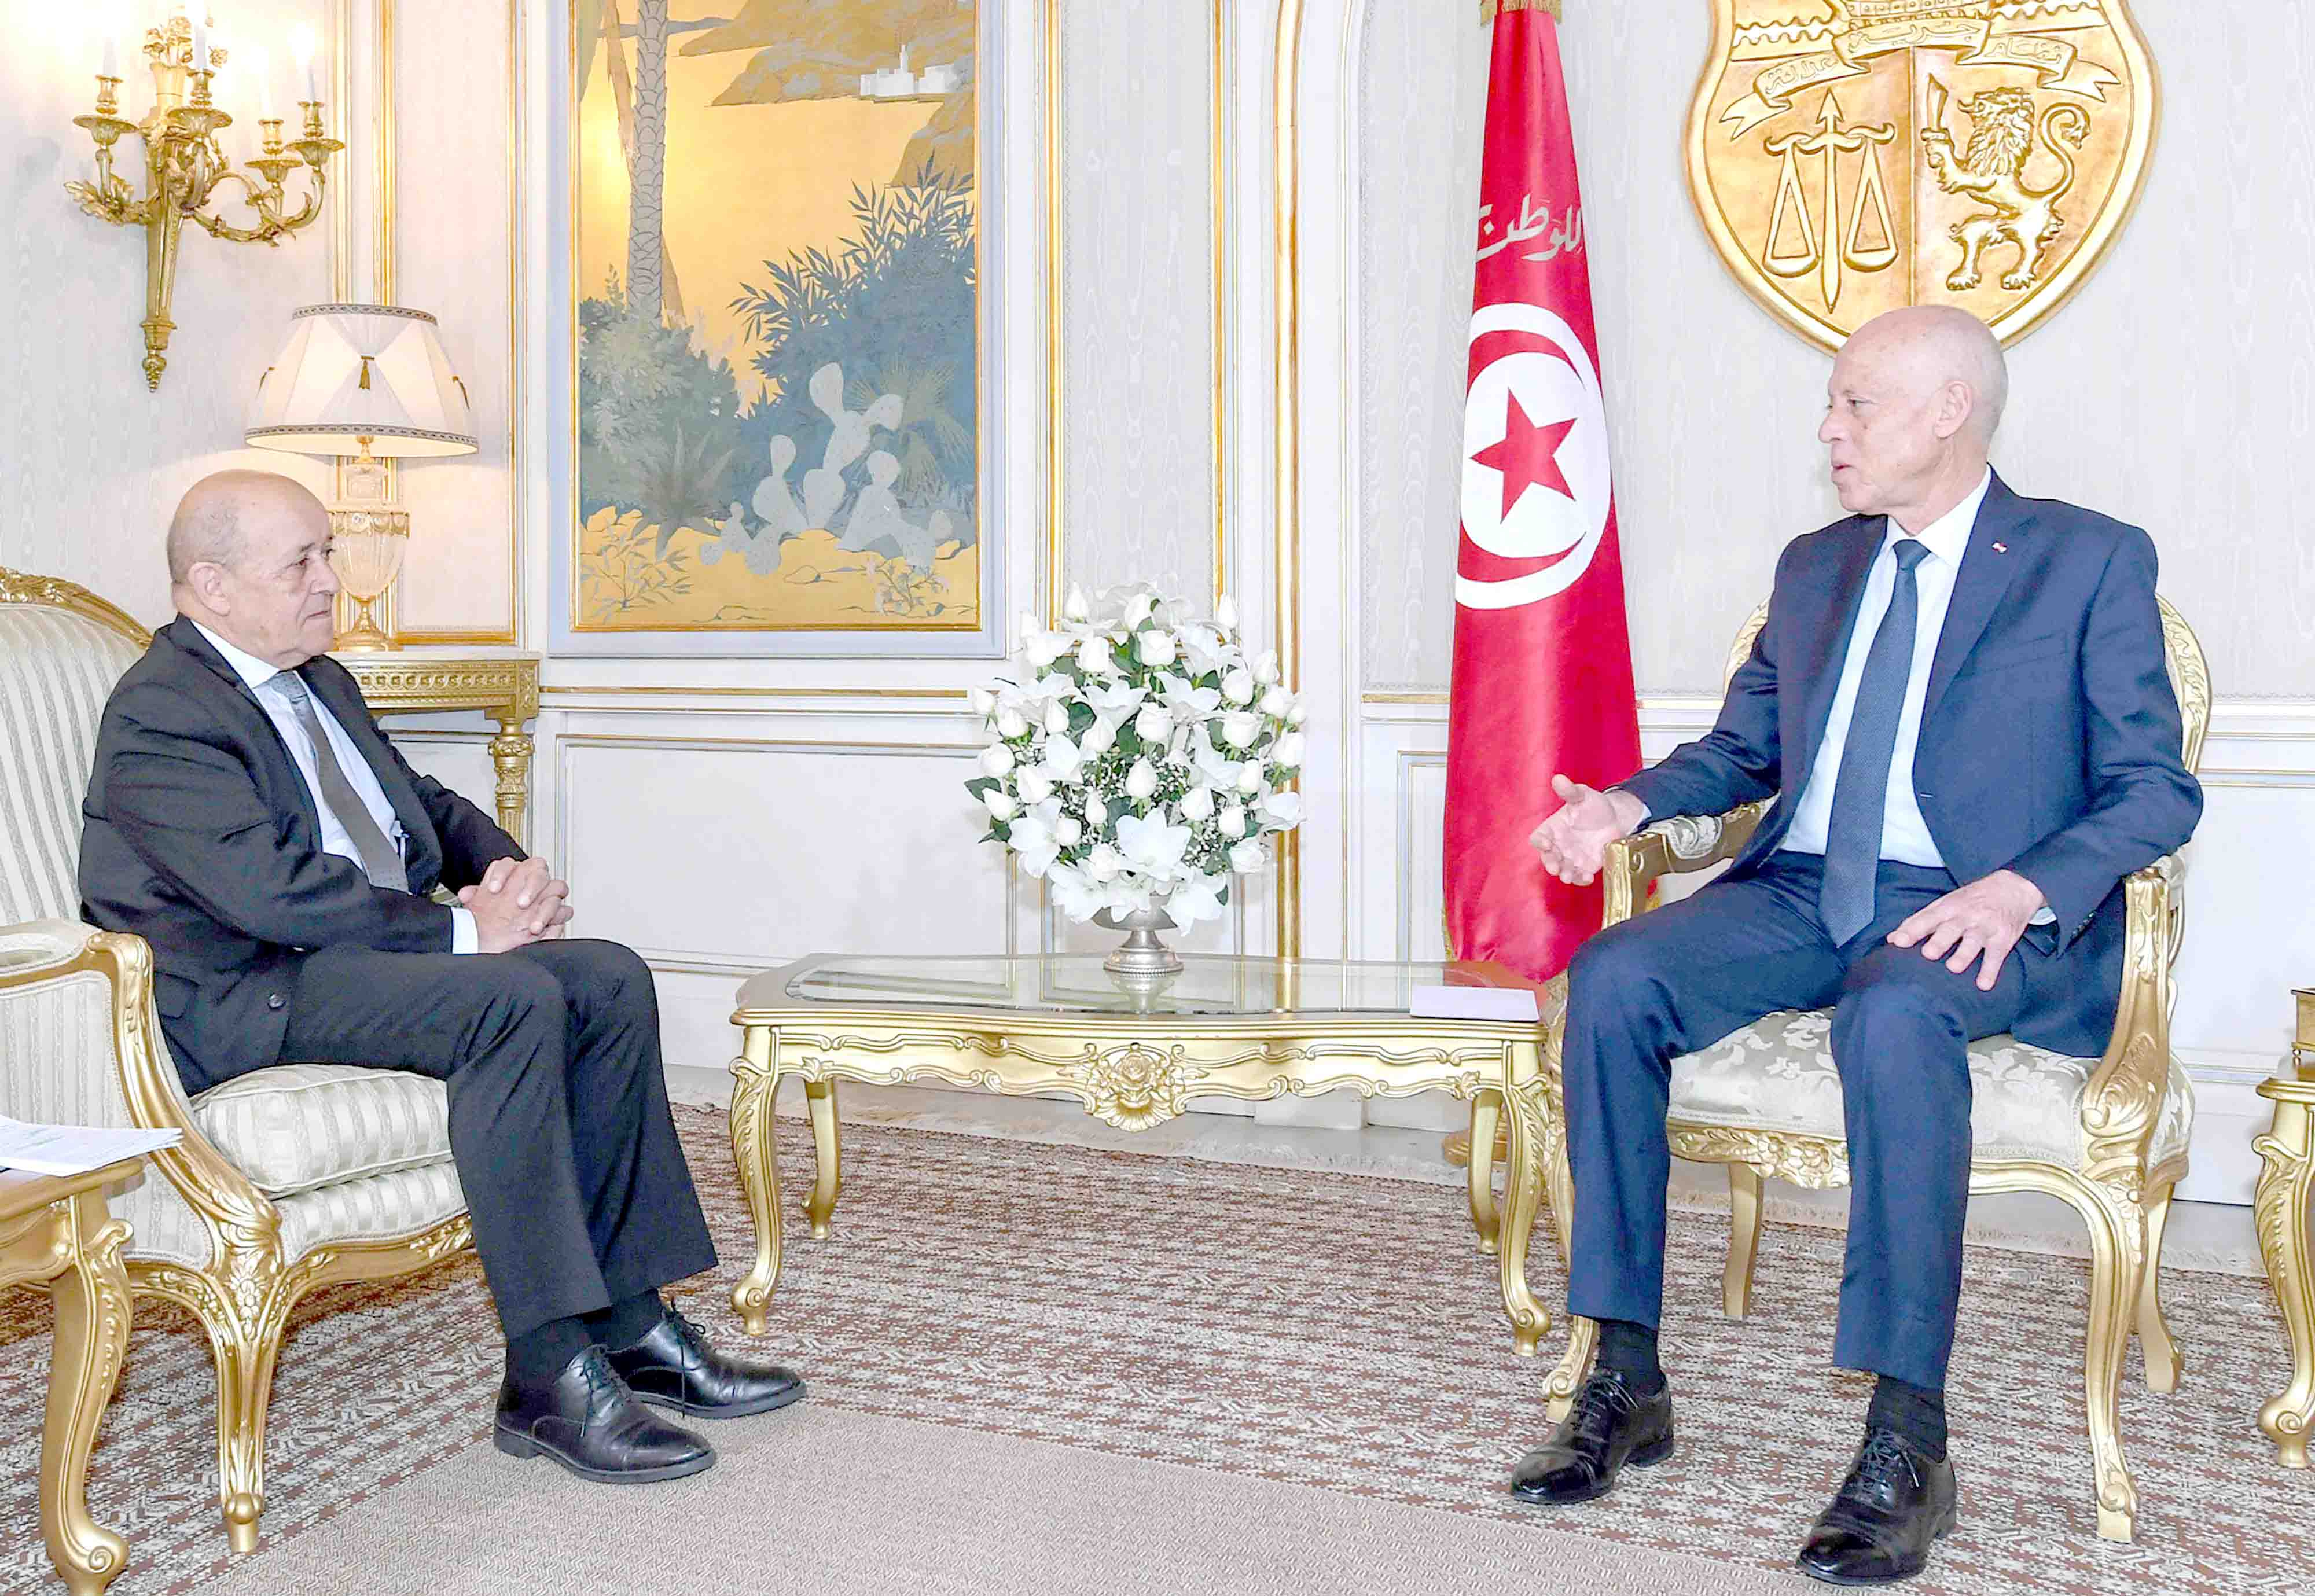 Mounting concerns. Tunisian President Kais Saied (R) meets with French Foreign Affairs Minister  Jean-Yves Le Drian at the presidential palace in Carthage for talks on the Libyan crisis, January 9.(AFP)